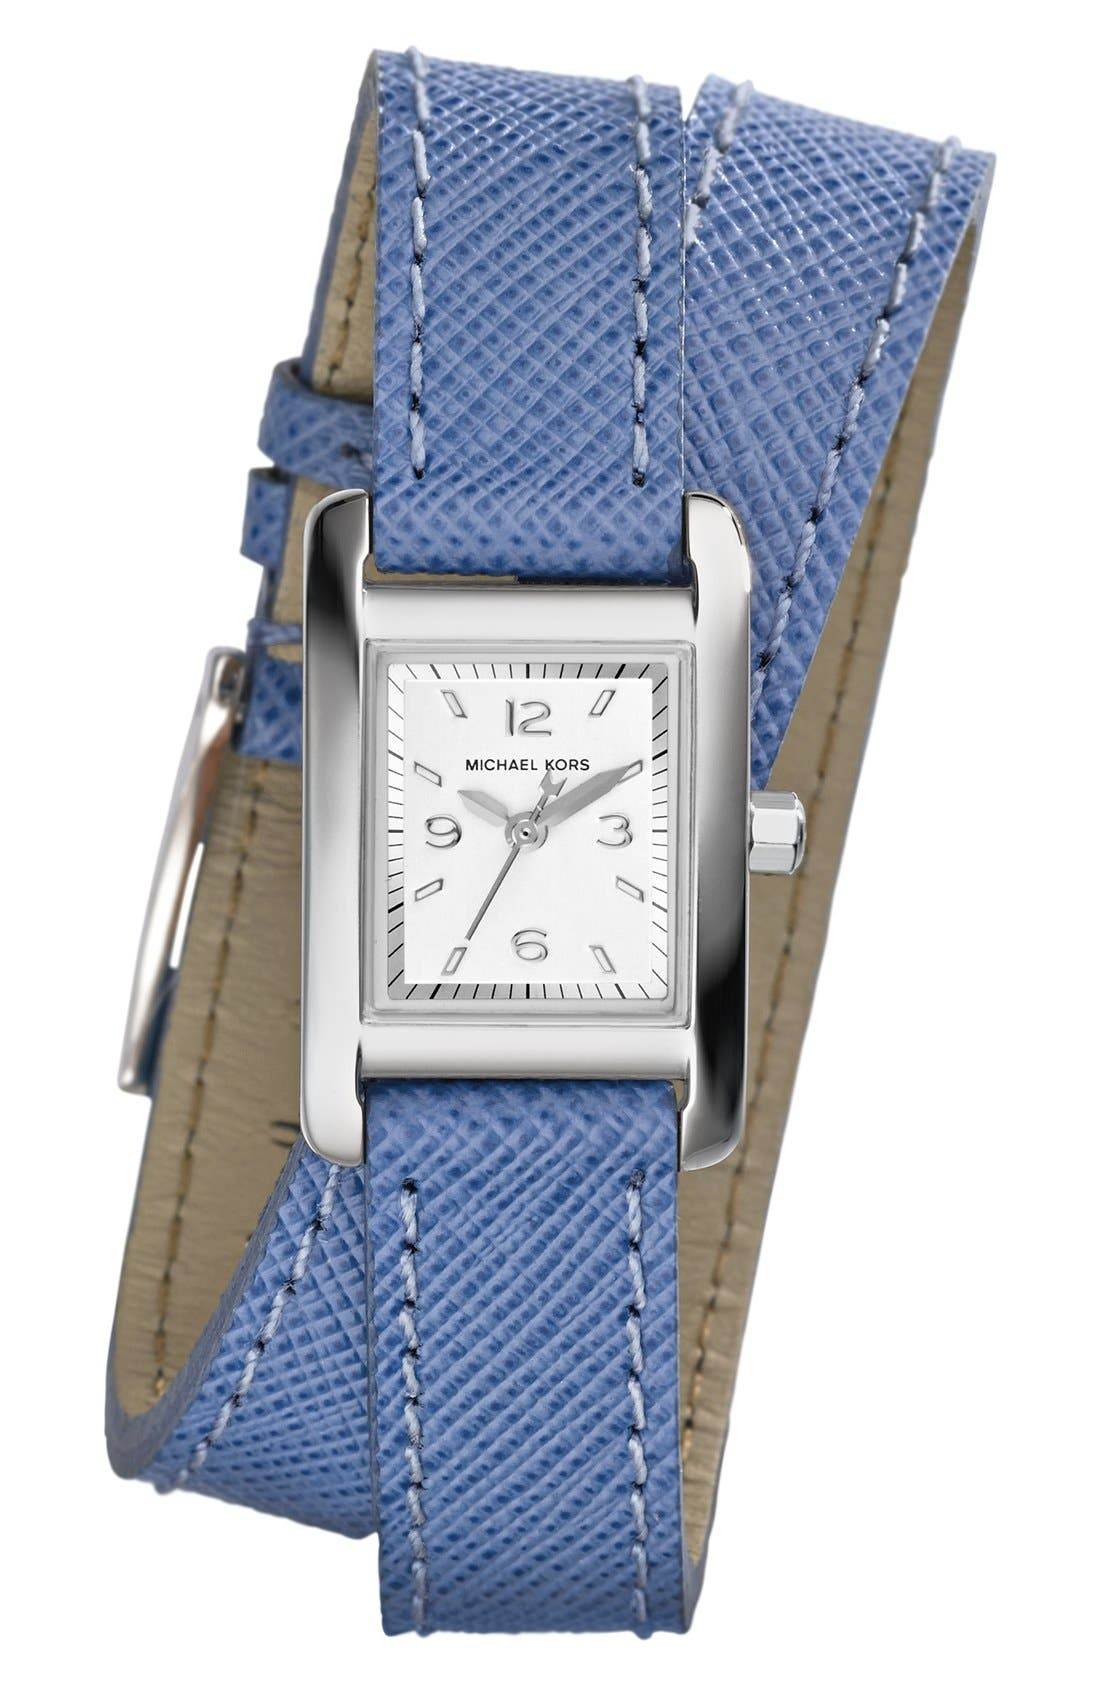 Alternate Image 1 Selected - Michael Kors 'Mini Taylor' Rectangle Leather Strap Wrap Watch, 22mm